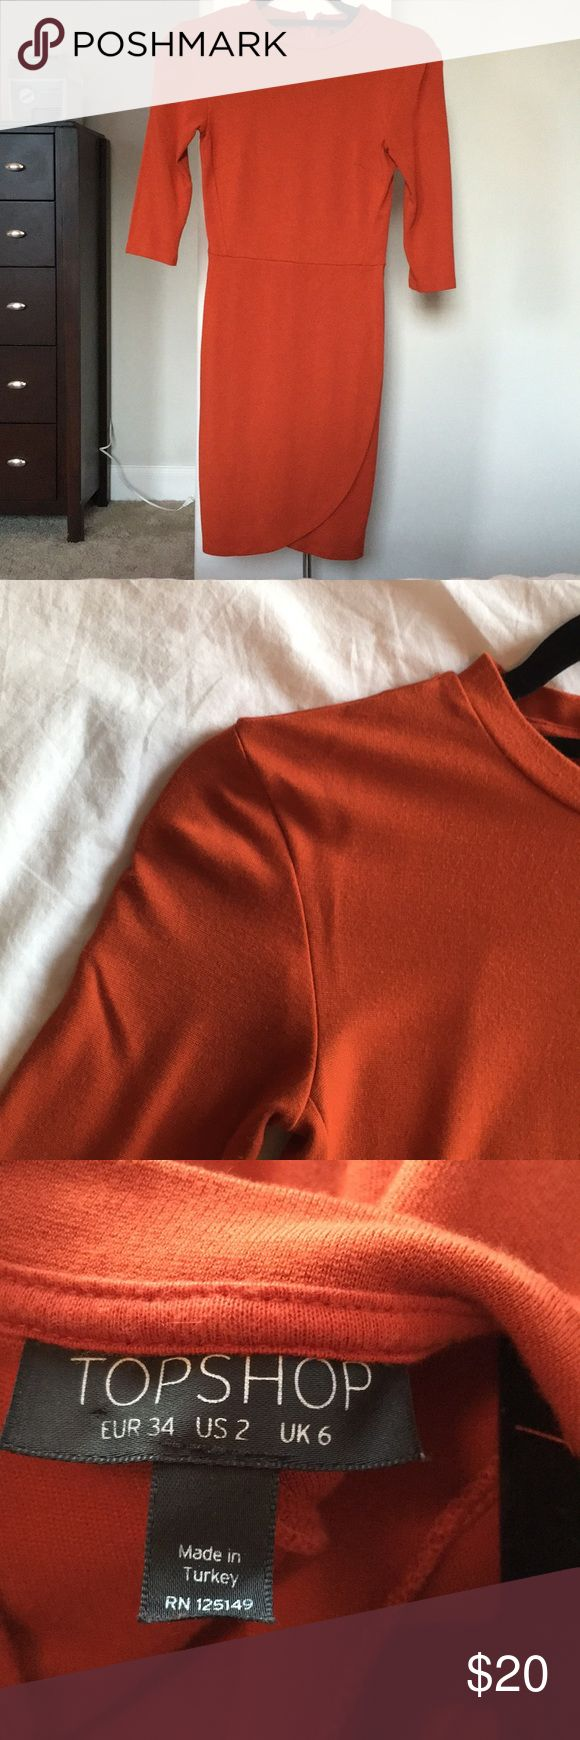 Tulip Skirt Bodycon Dress Comfortable & Flattering Bodycon Dress! A burnt orange color that is sure to turn heads! Hits at about mid thigh. Worn 3 times. Non-Smoking Environment. 3/4 Sleeve Topshop Dresses Long Sleeve